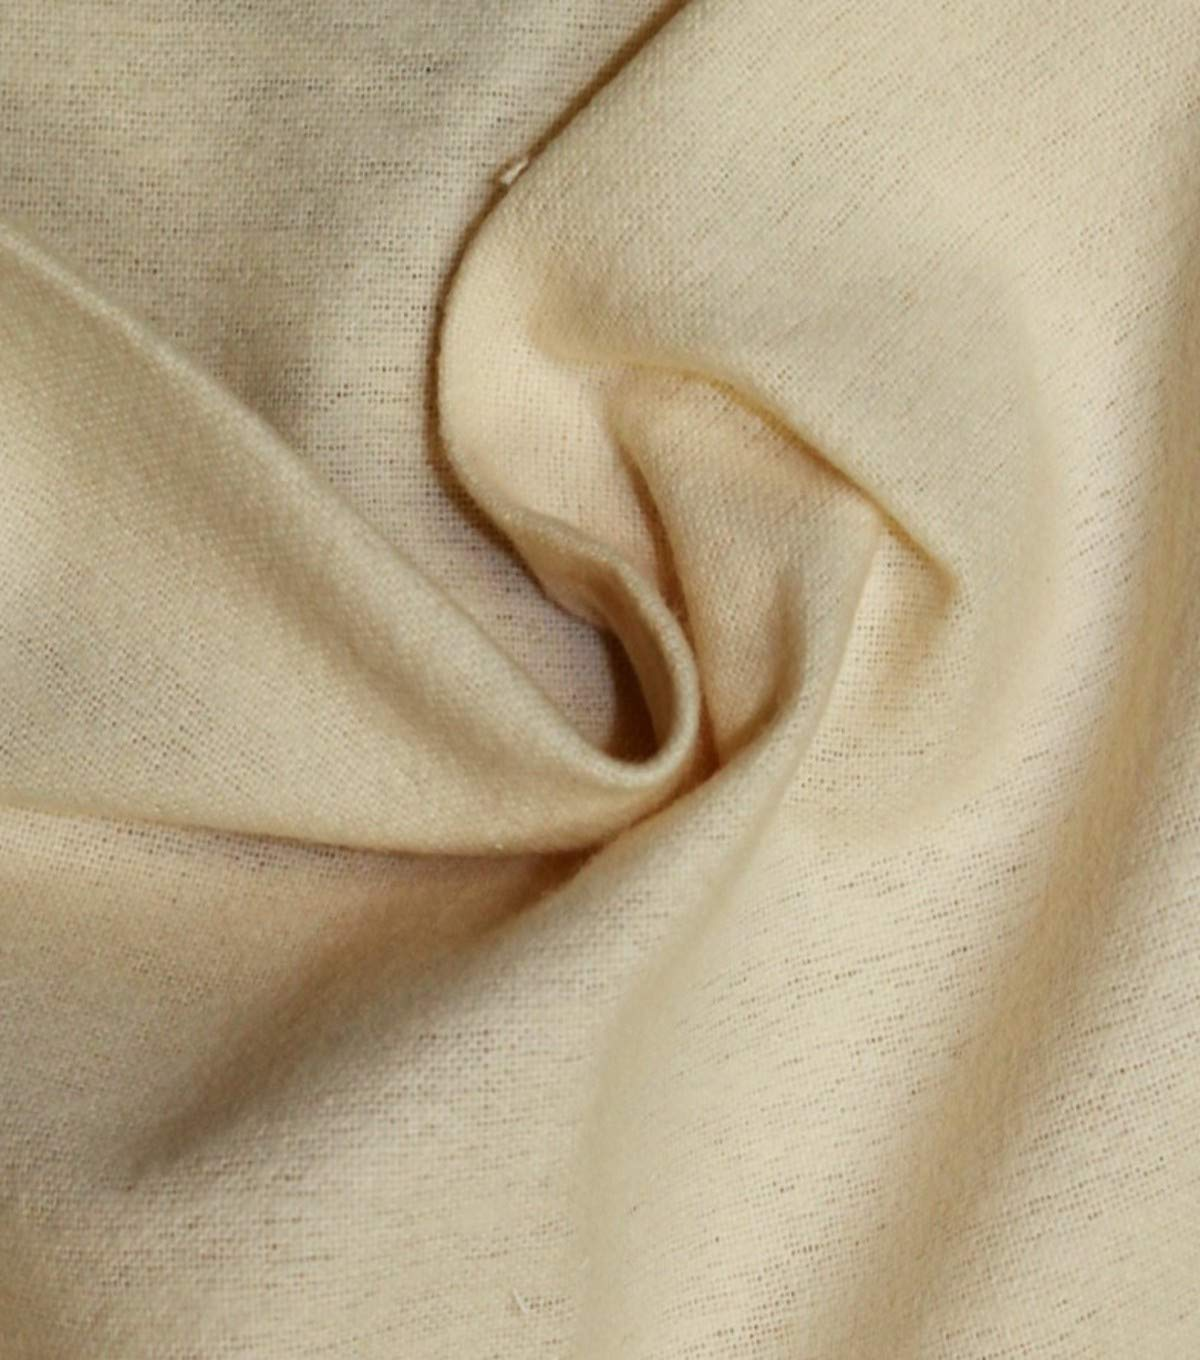 Roc-lon Bump 70-Percent Cotton/30-Percent Polyester interlining for Window by Roc-lon (Image #5)